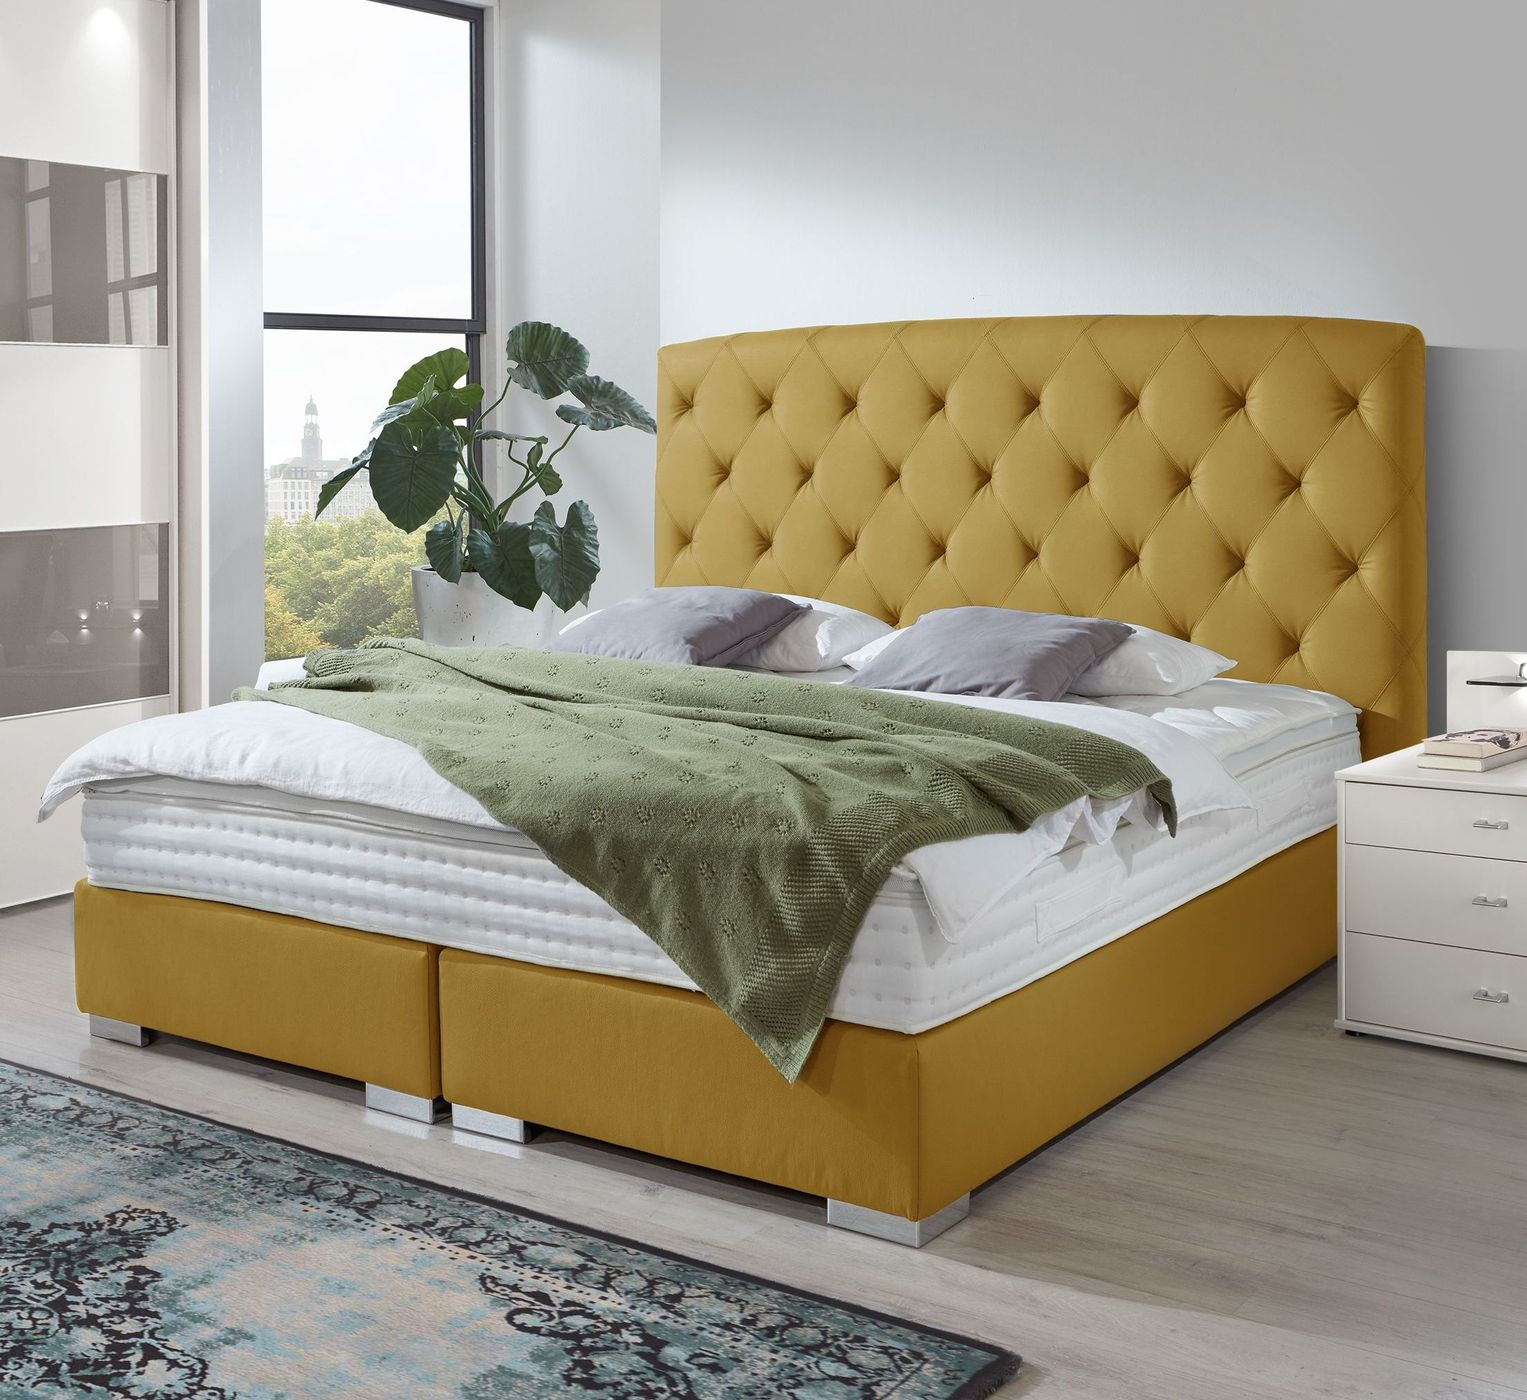 boxspringbett in chesterfield optik made in germany gainesville. Black Bedroom Furniture Sets. Home Design Ideas